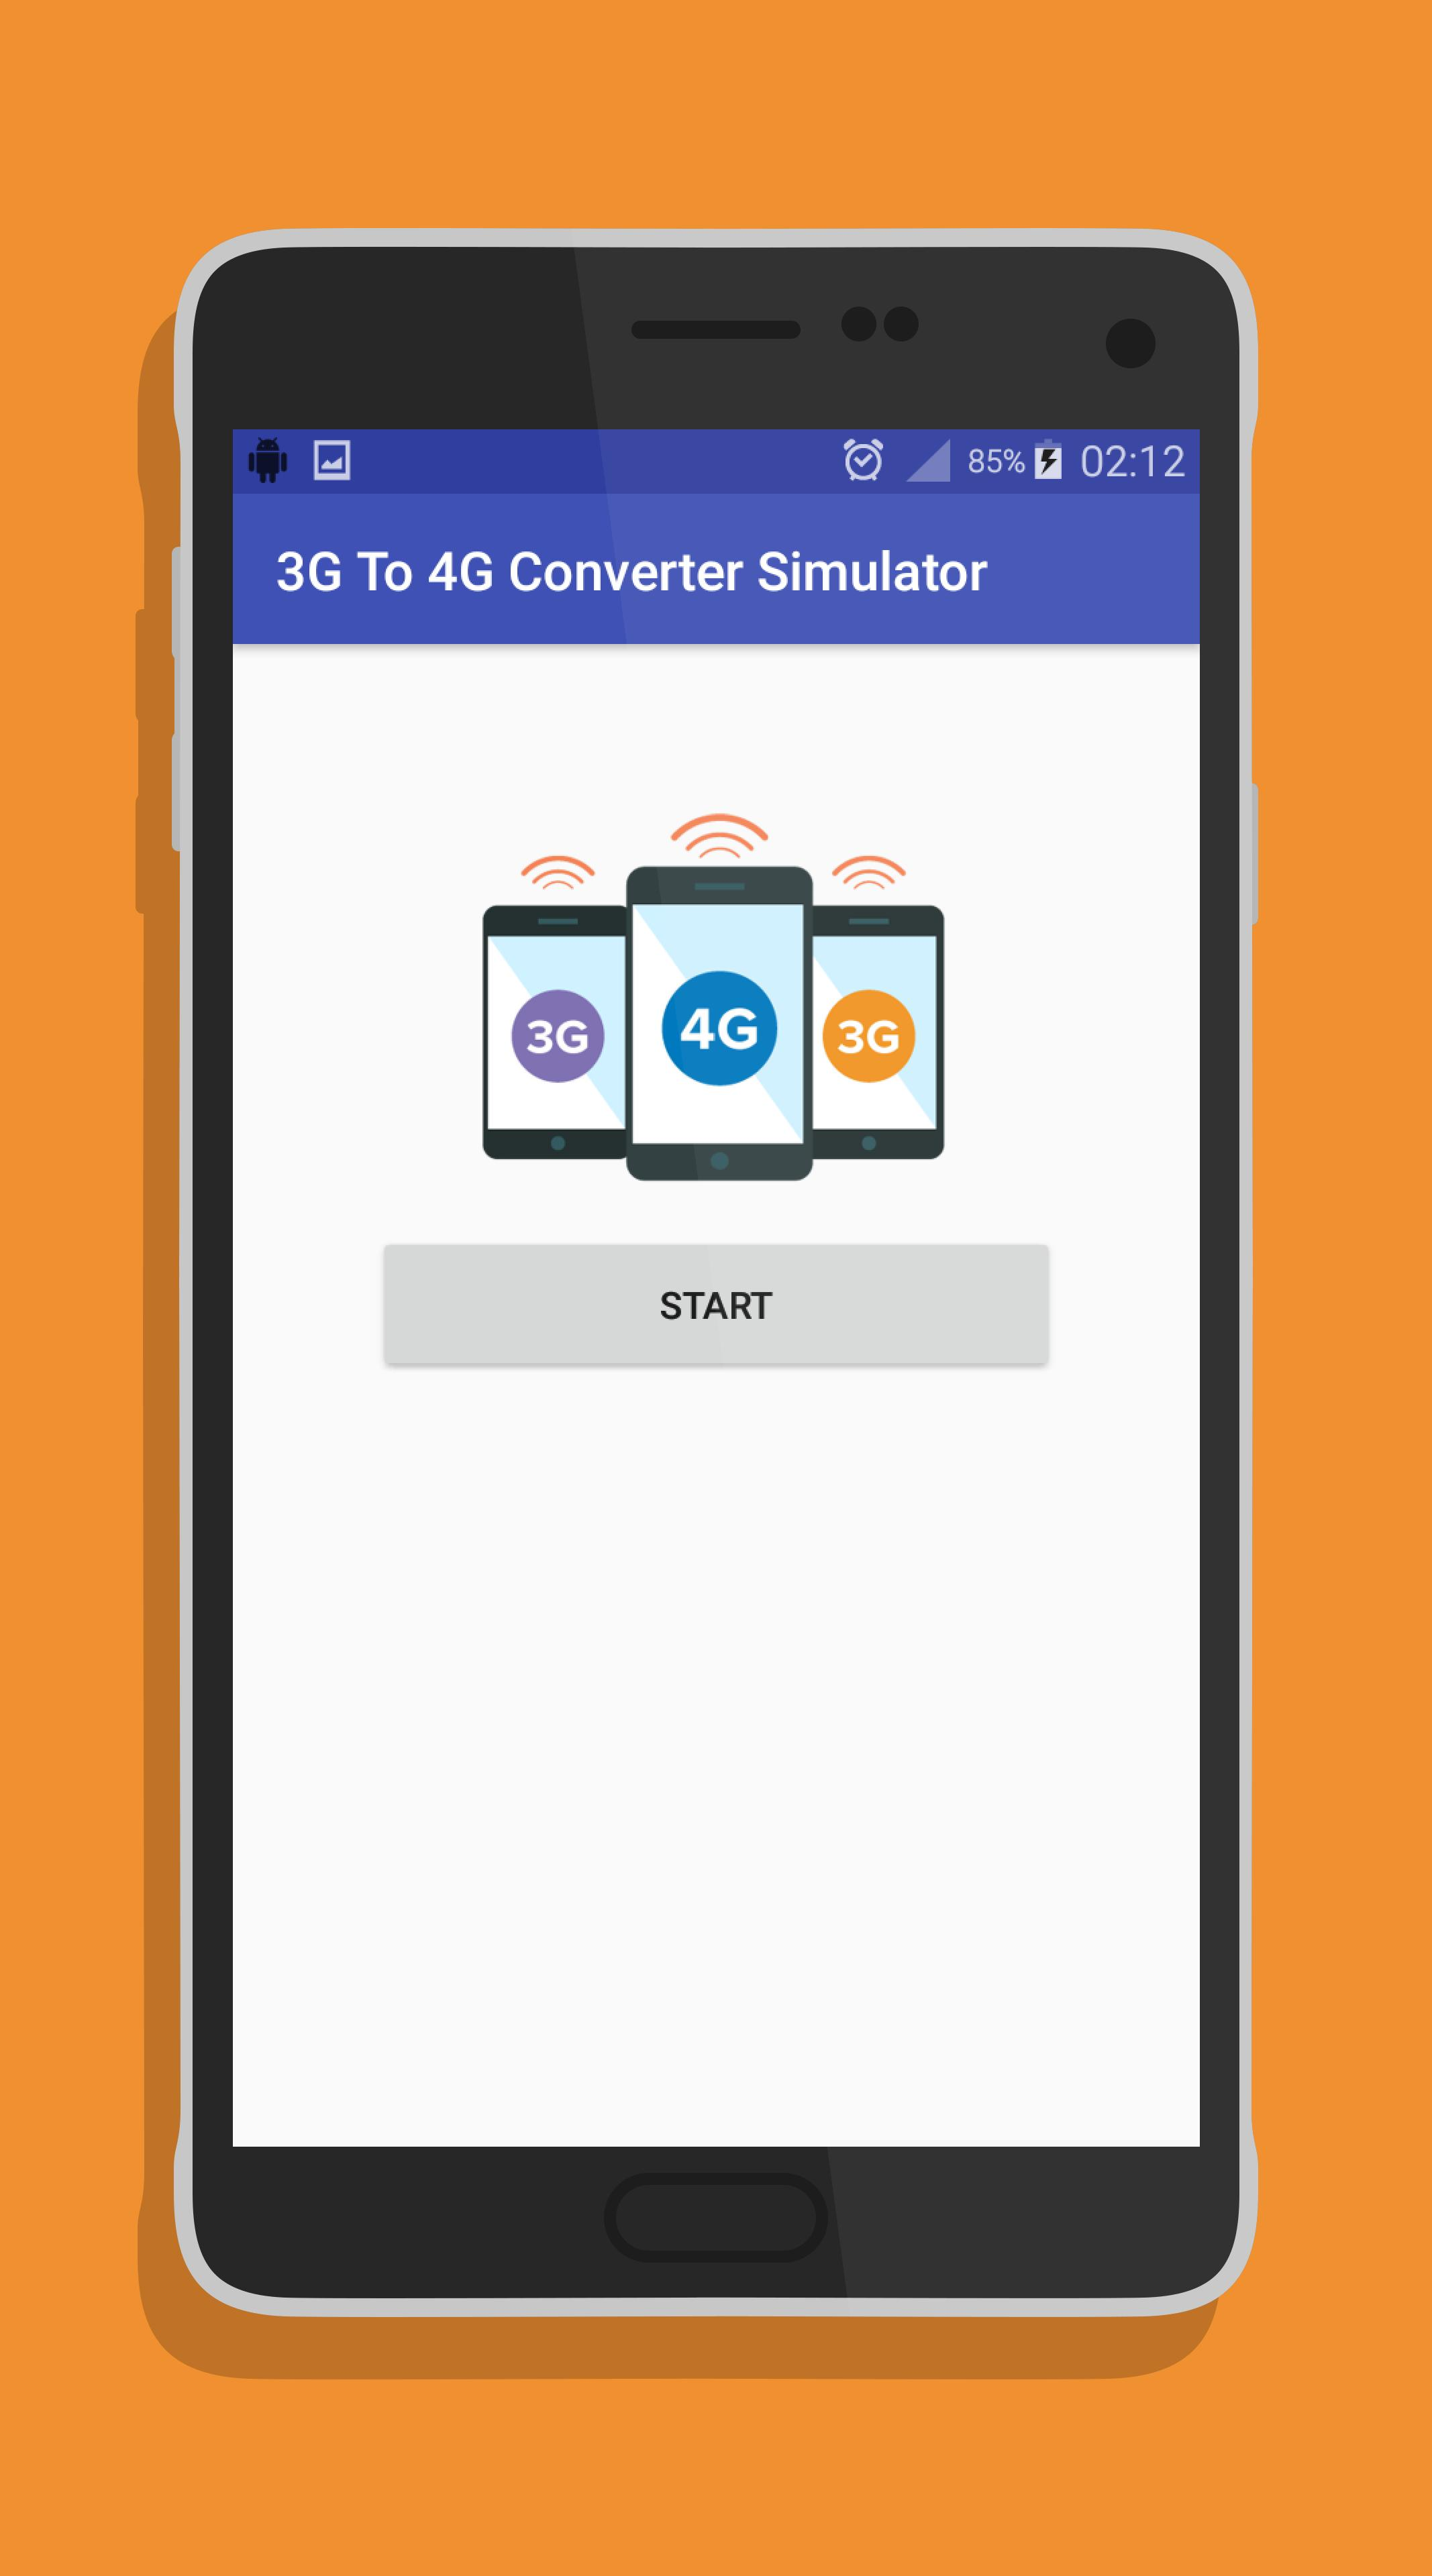 3G To 4G Converter Simulator for Android - APK Download